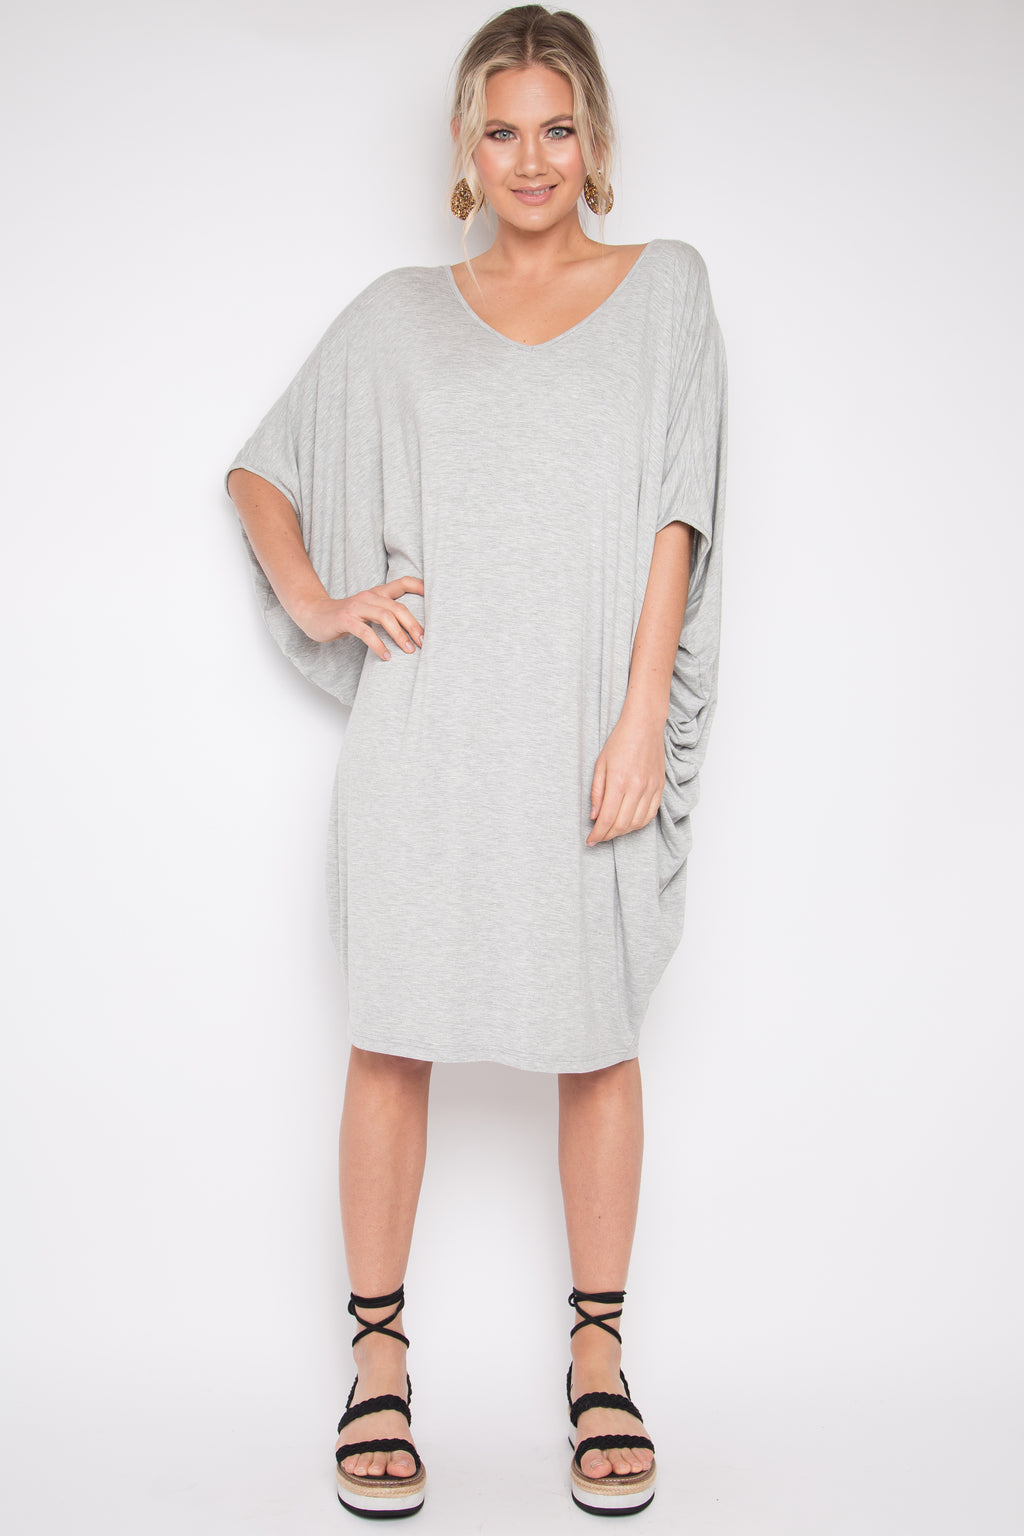 Original Miracle Dress in Marle Grey (bamboo)